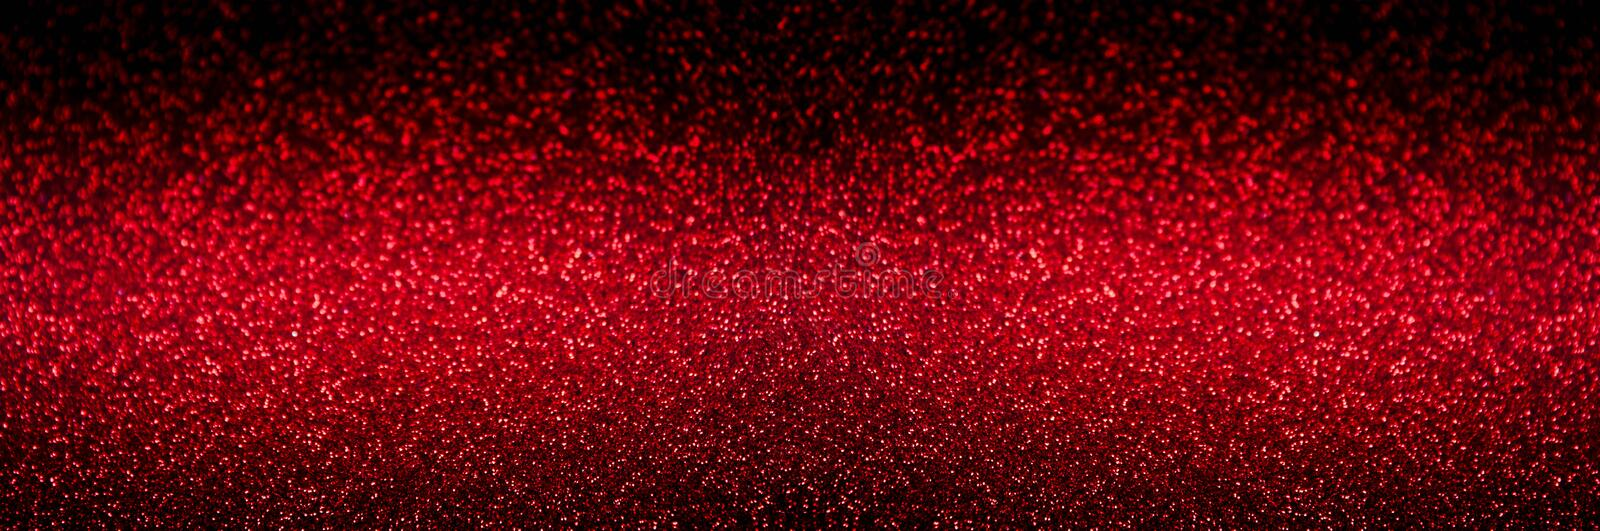 Festive Red abstract blurred glitter background royalty free stock photos